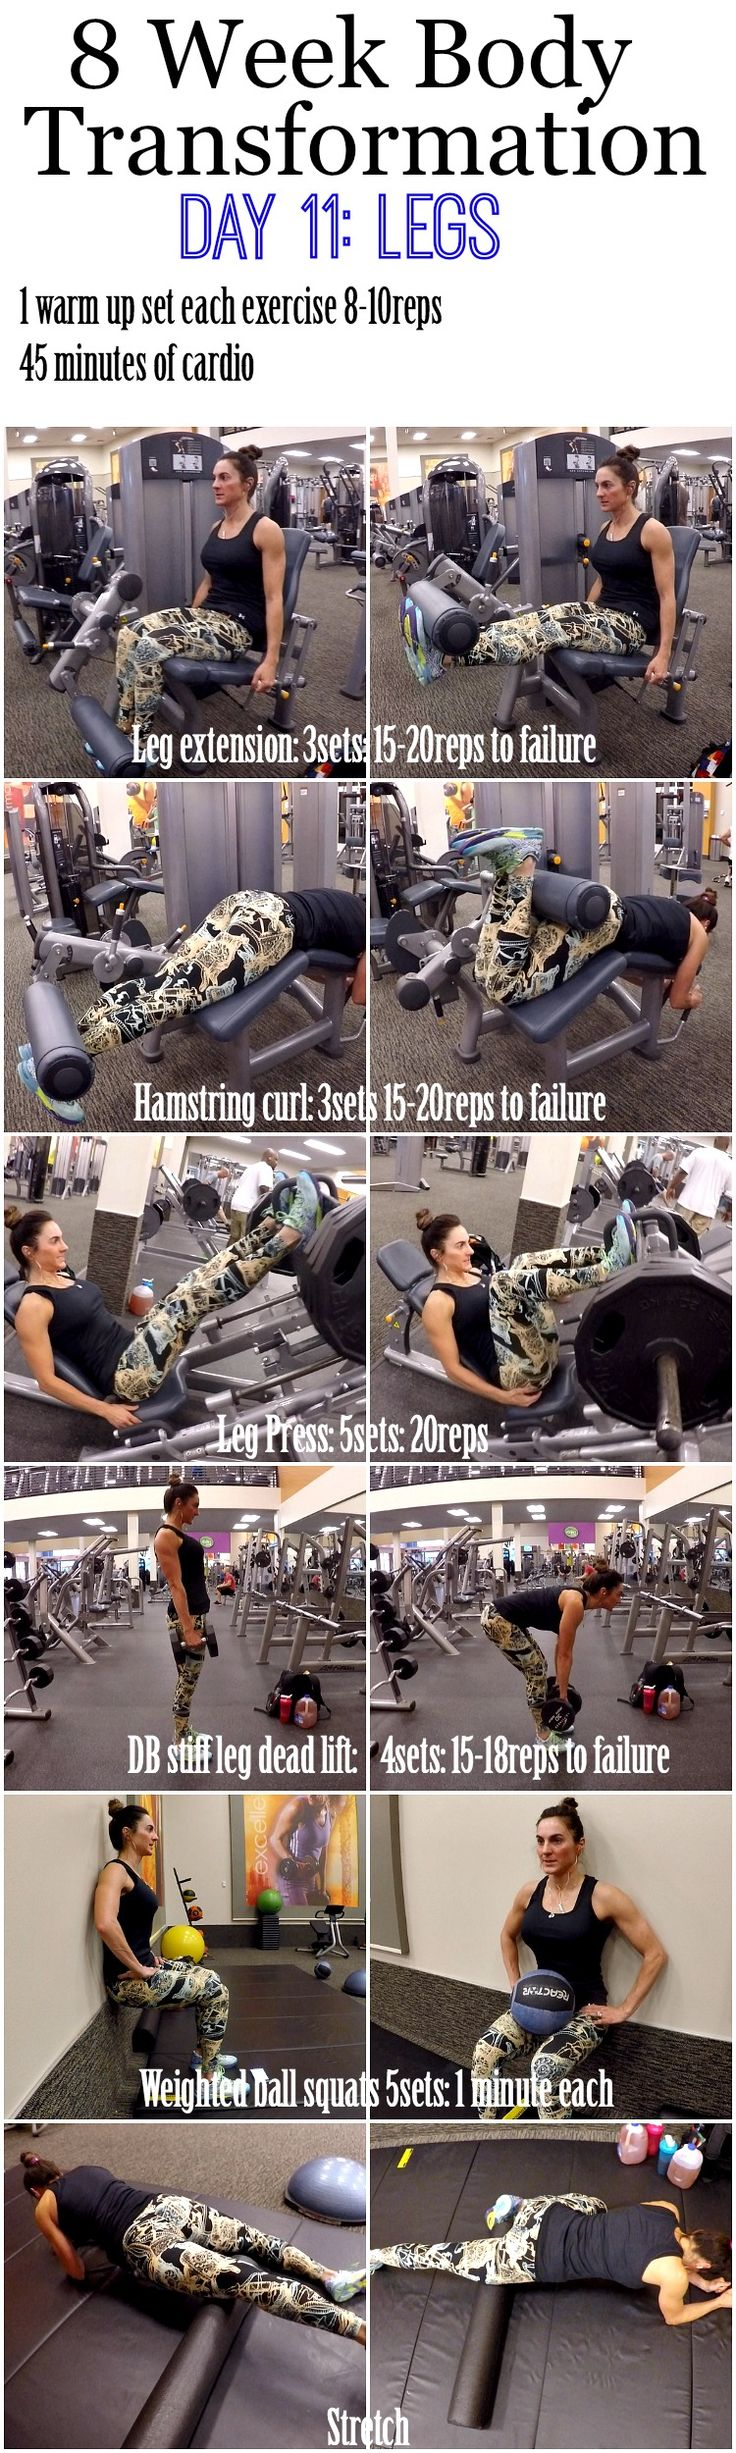 Welcome to Day 11, another day of LEGS. Yesterday, Day 10 was an active rest day so make sure to get your cardio in, but leave the weights alone. Today we have 5 exercises for legs, so make sure to watch the video and pay attention to the different sets/reps in this workout. We have …